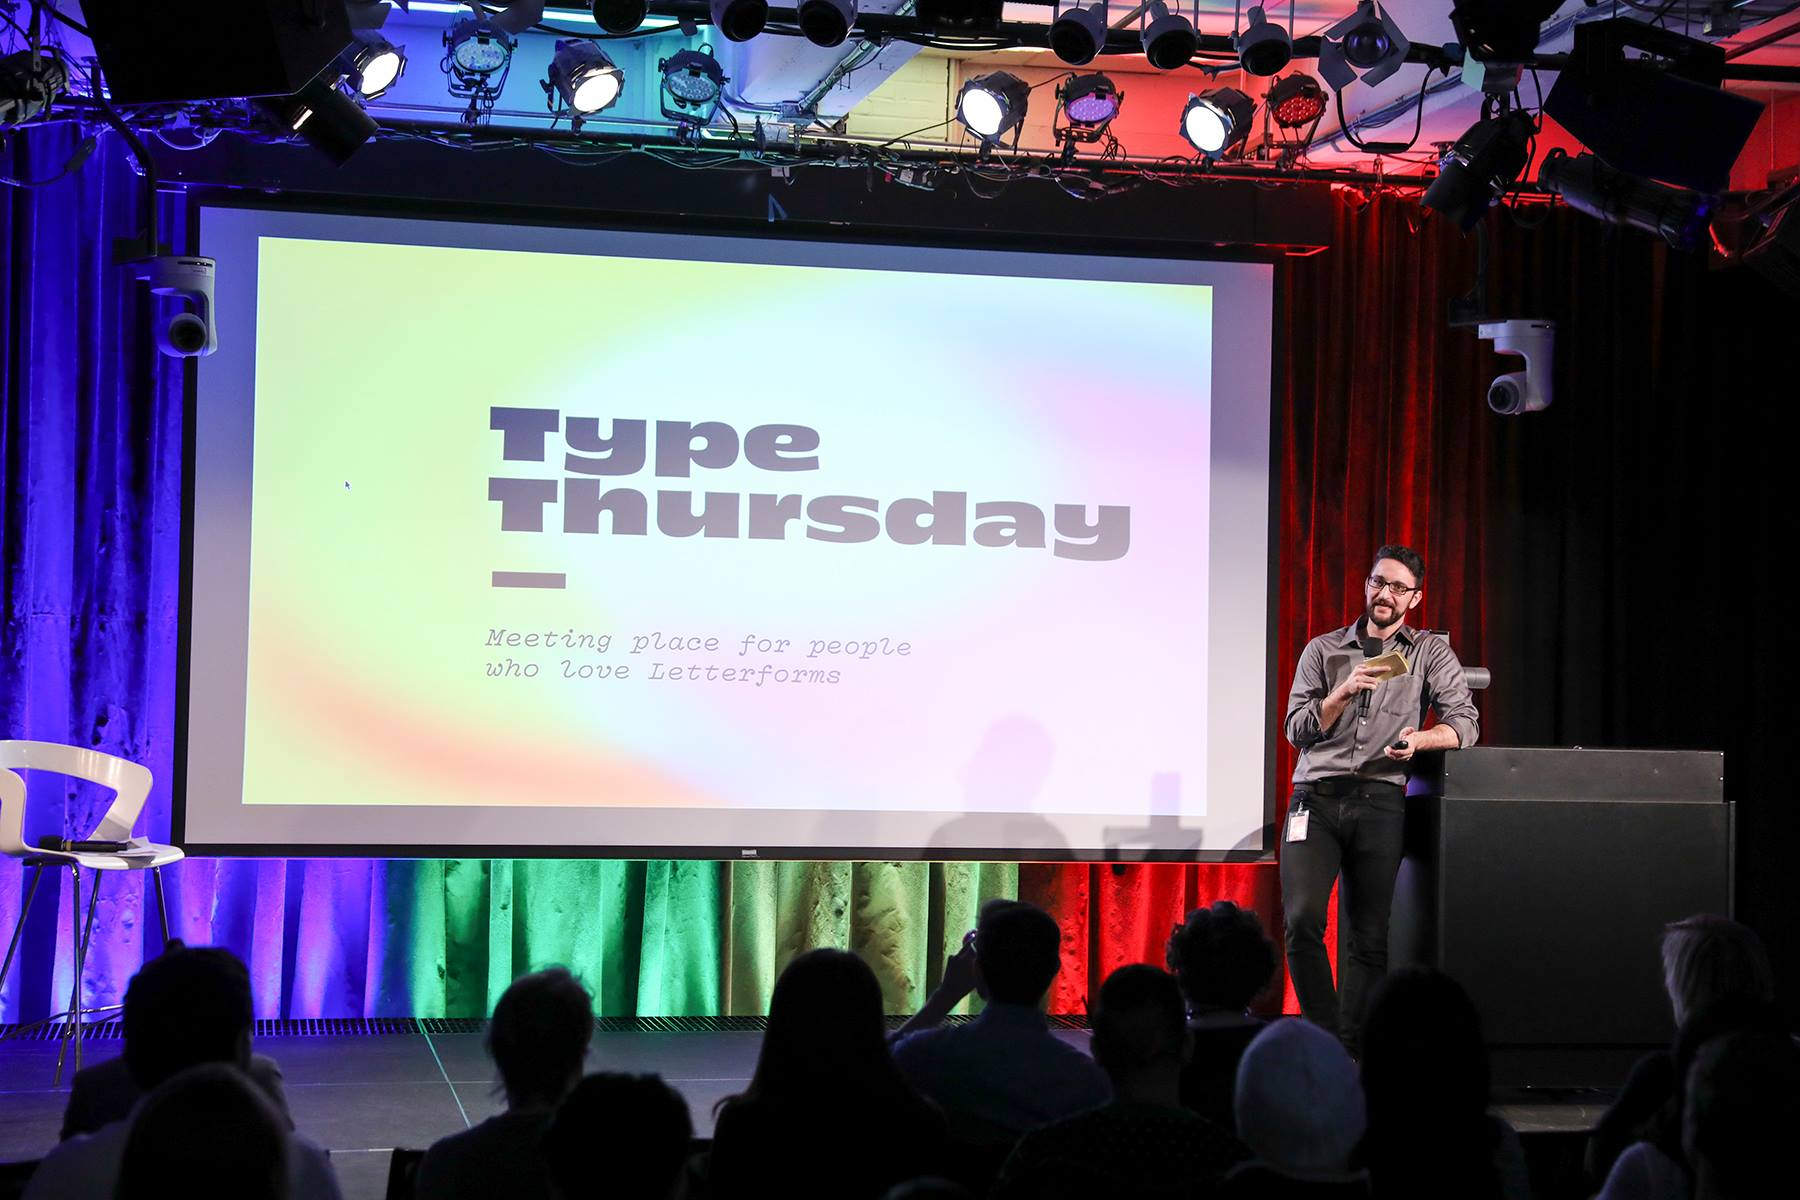 Thomas Jockin with the introduction and housekeeping notes at Type Thursday NYC. Photo by [Julie Thompson](https://www.instagram.com/juliebthompson9/)